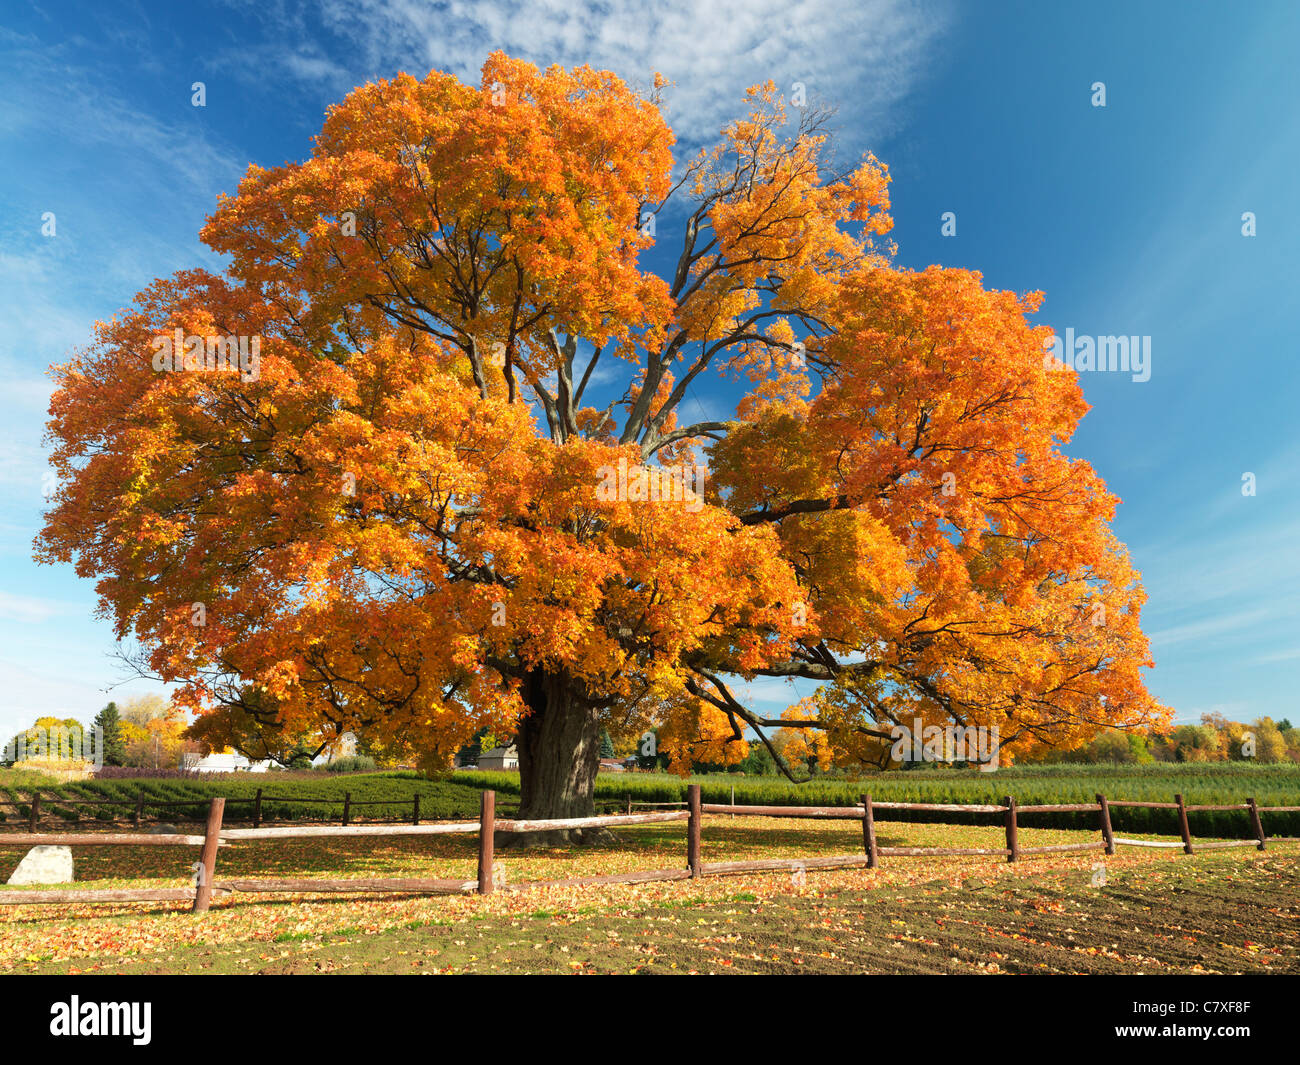 Canada,Ontario,Fonthill,the Comfort Maple, one of the oldest trees in Canada aged over 450 years - Stock Image